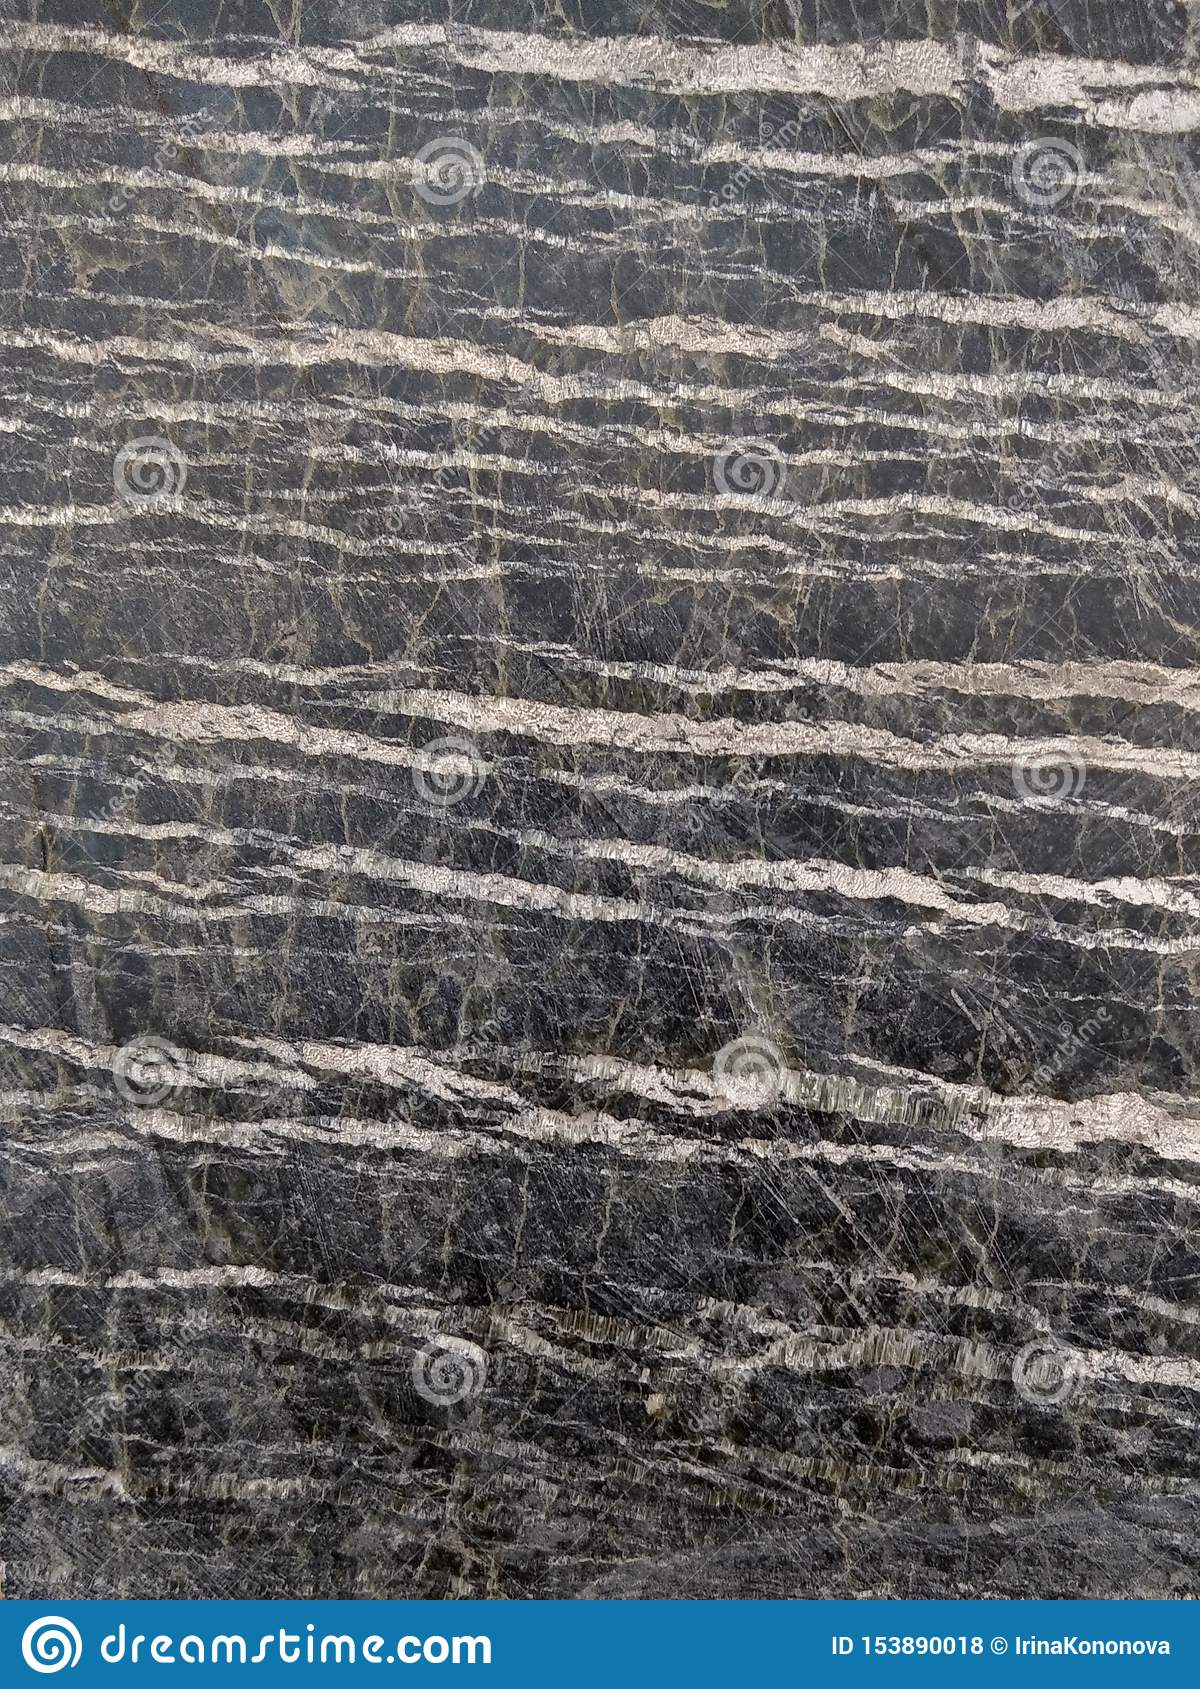 Polished stone serpentine with streaks of asbestos chrysotile. Dark gray with light stripes